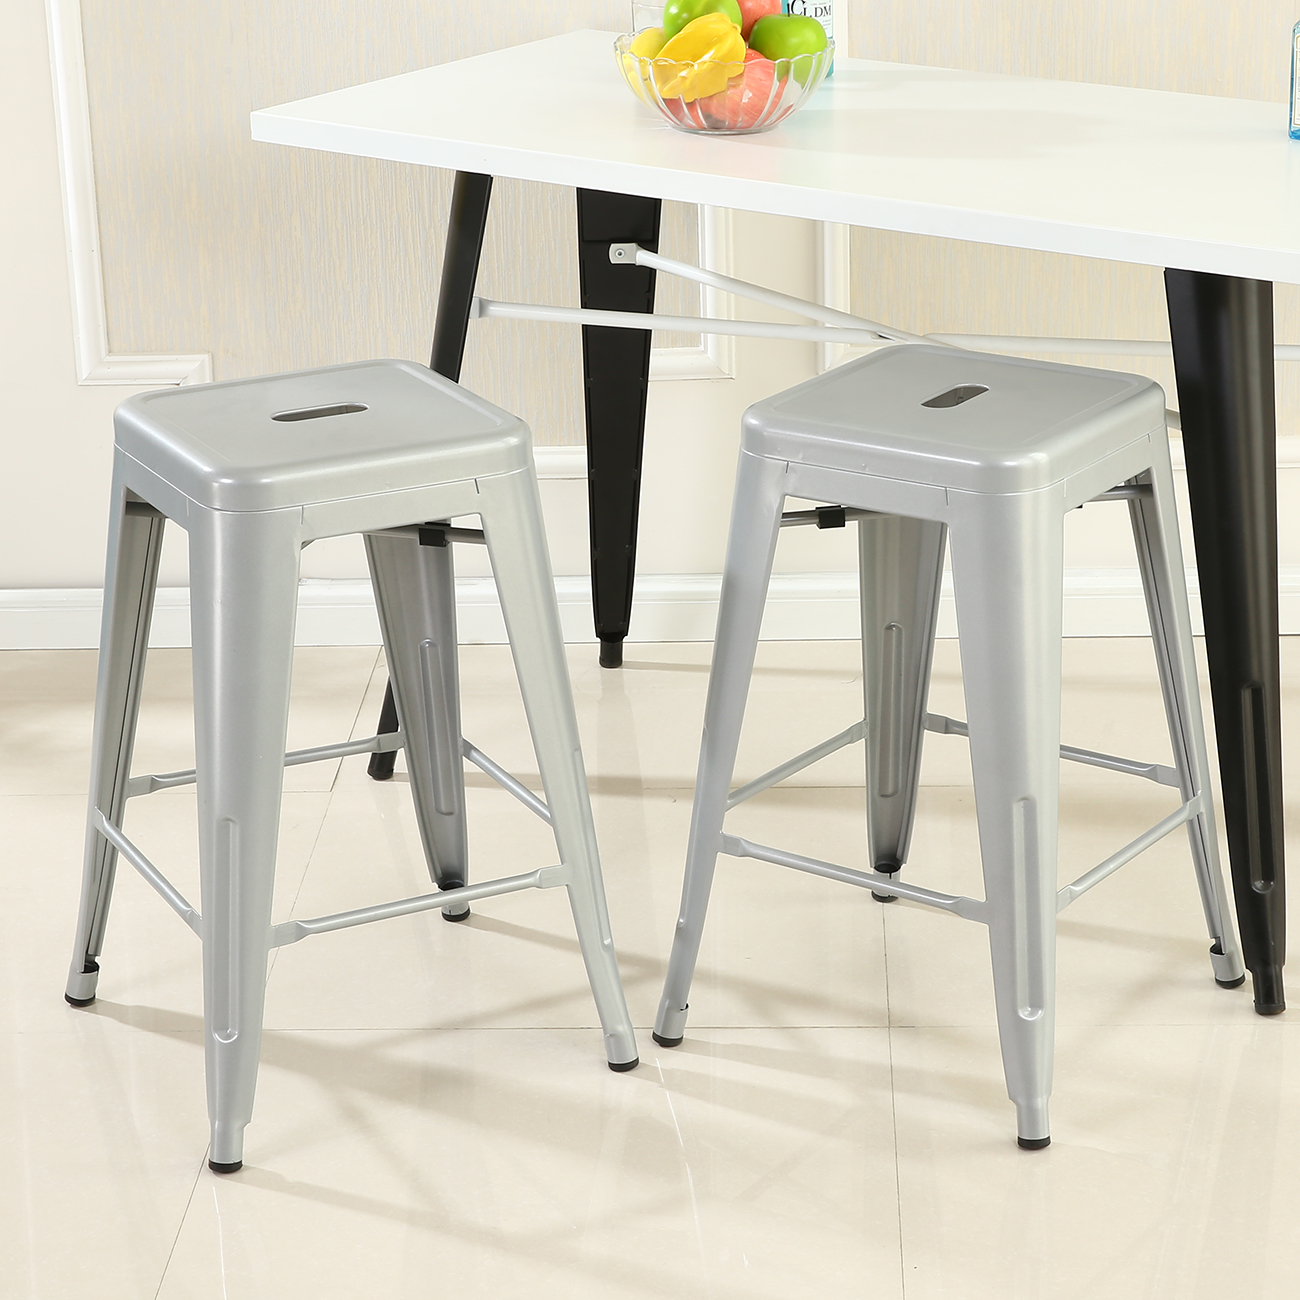 Metal Counter Height Chairs 2 Pcs Modern Style Bar Stool Metal Stackable Stools Height